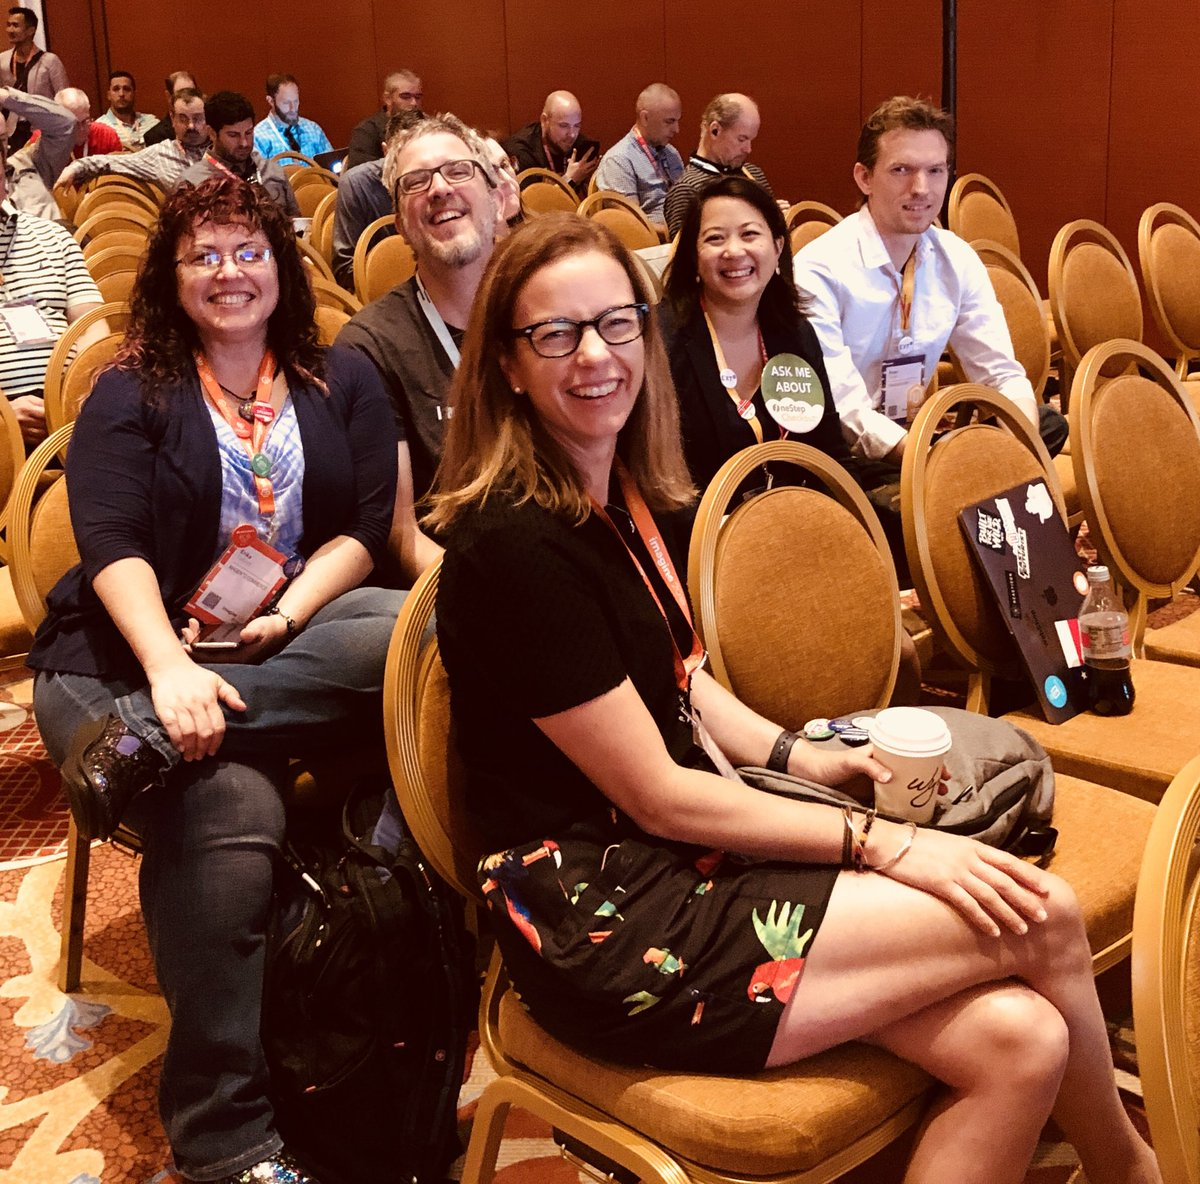 WebShopApps: Some of the @ext_dn crowd at the marketplace talk #MagentoImagine https://t.co/SztBAEzDz3